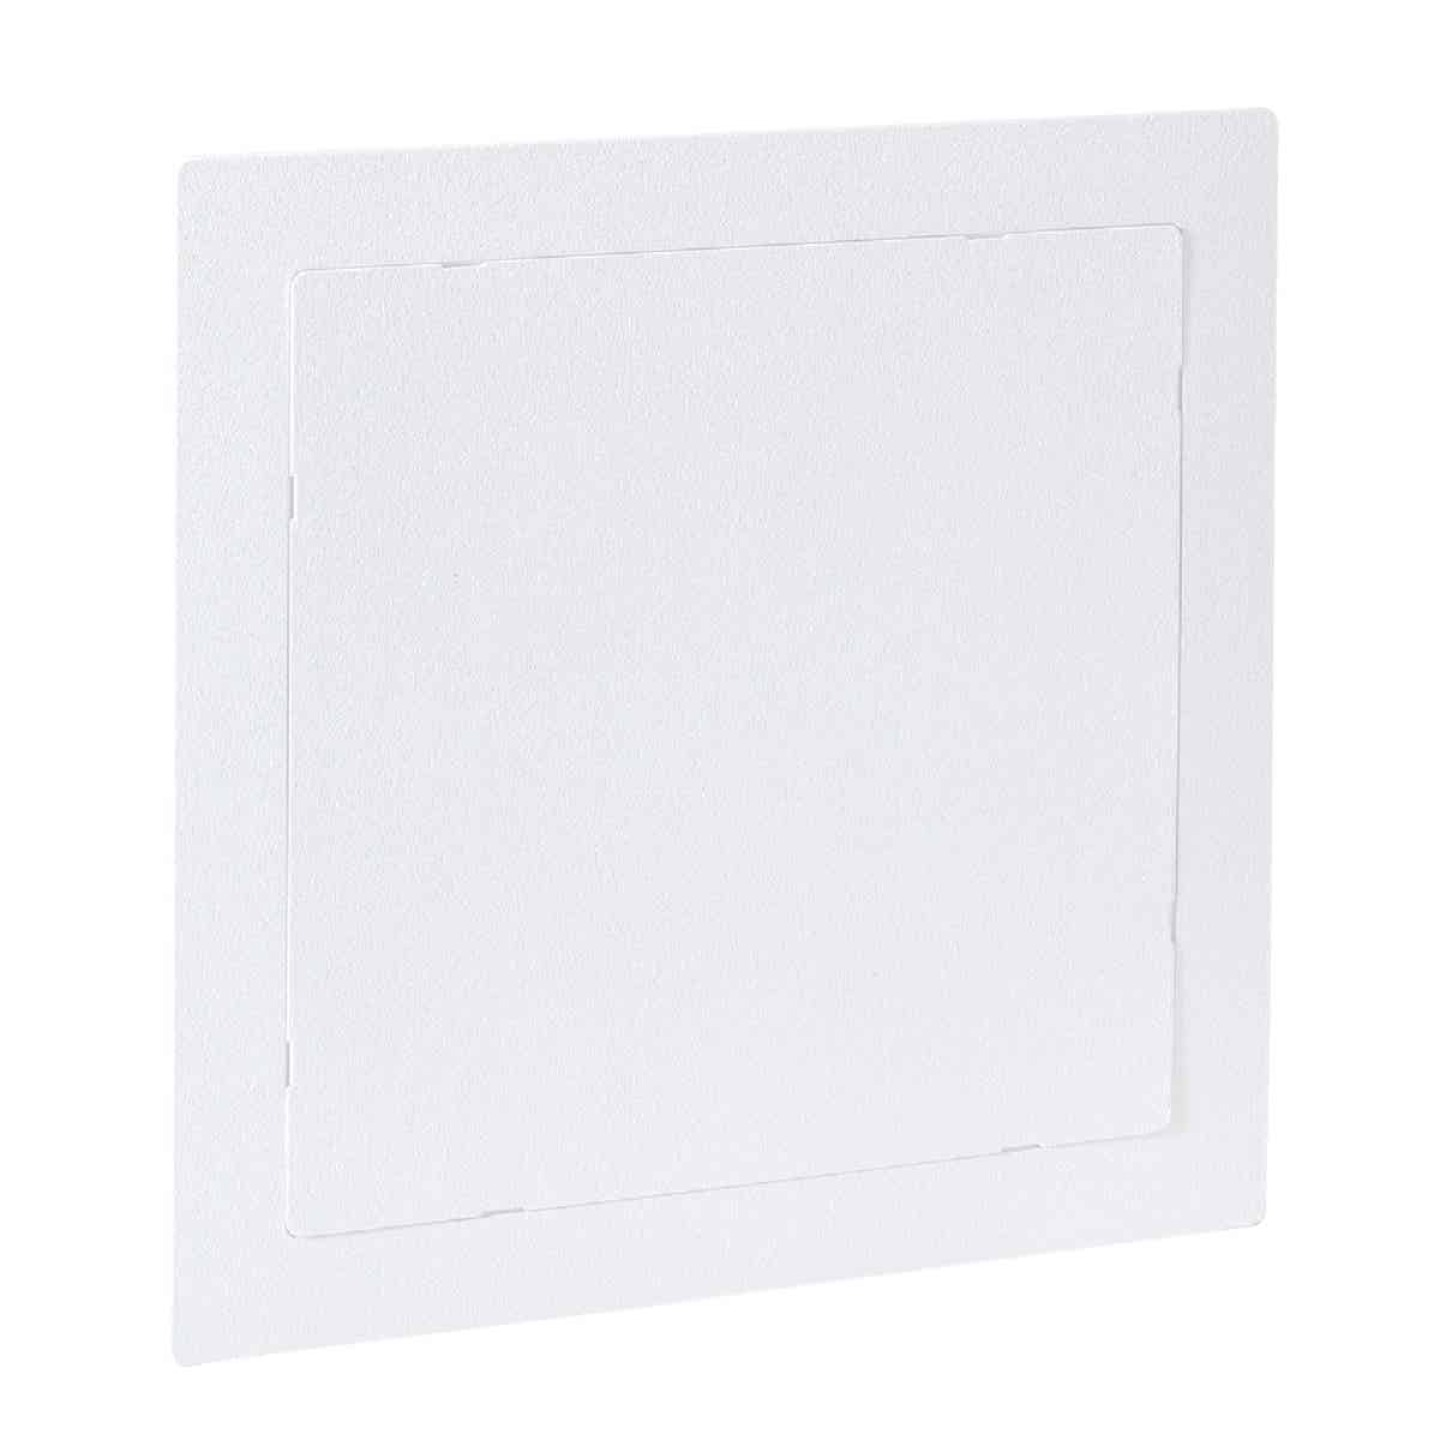 Oatey 14 In. x 14 In. White Plastic Wall Access Panel Image 1